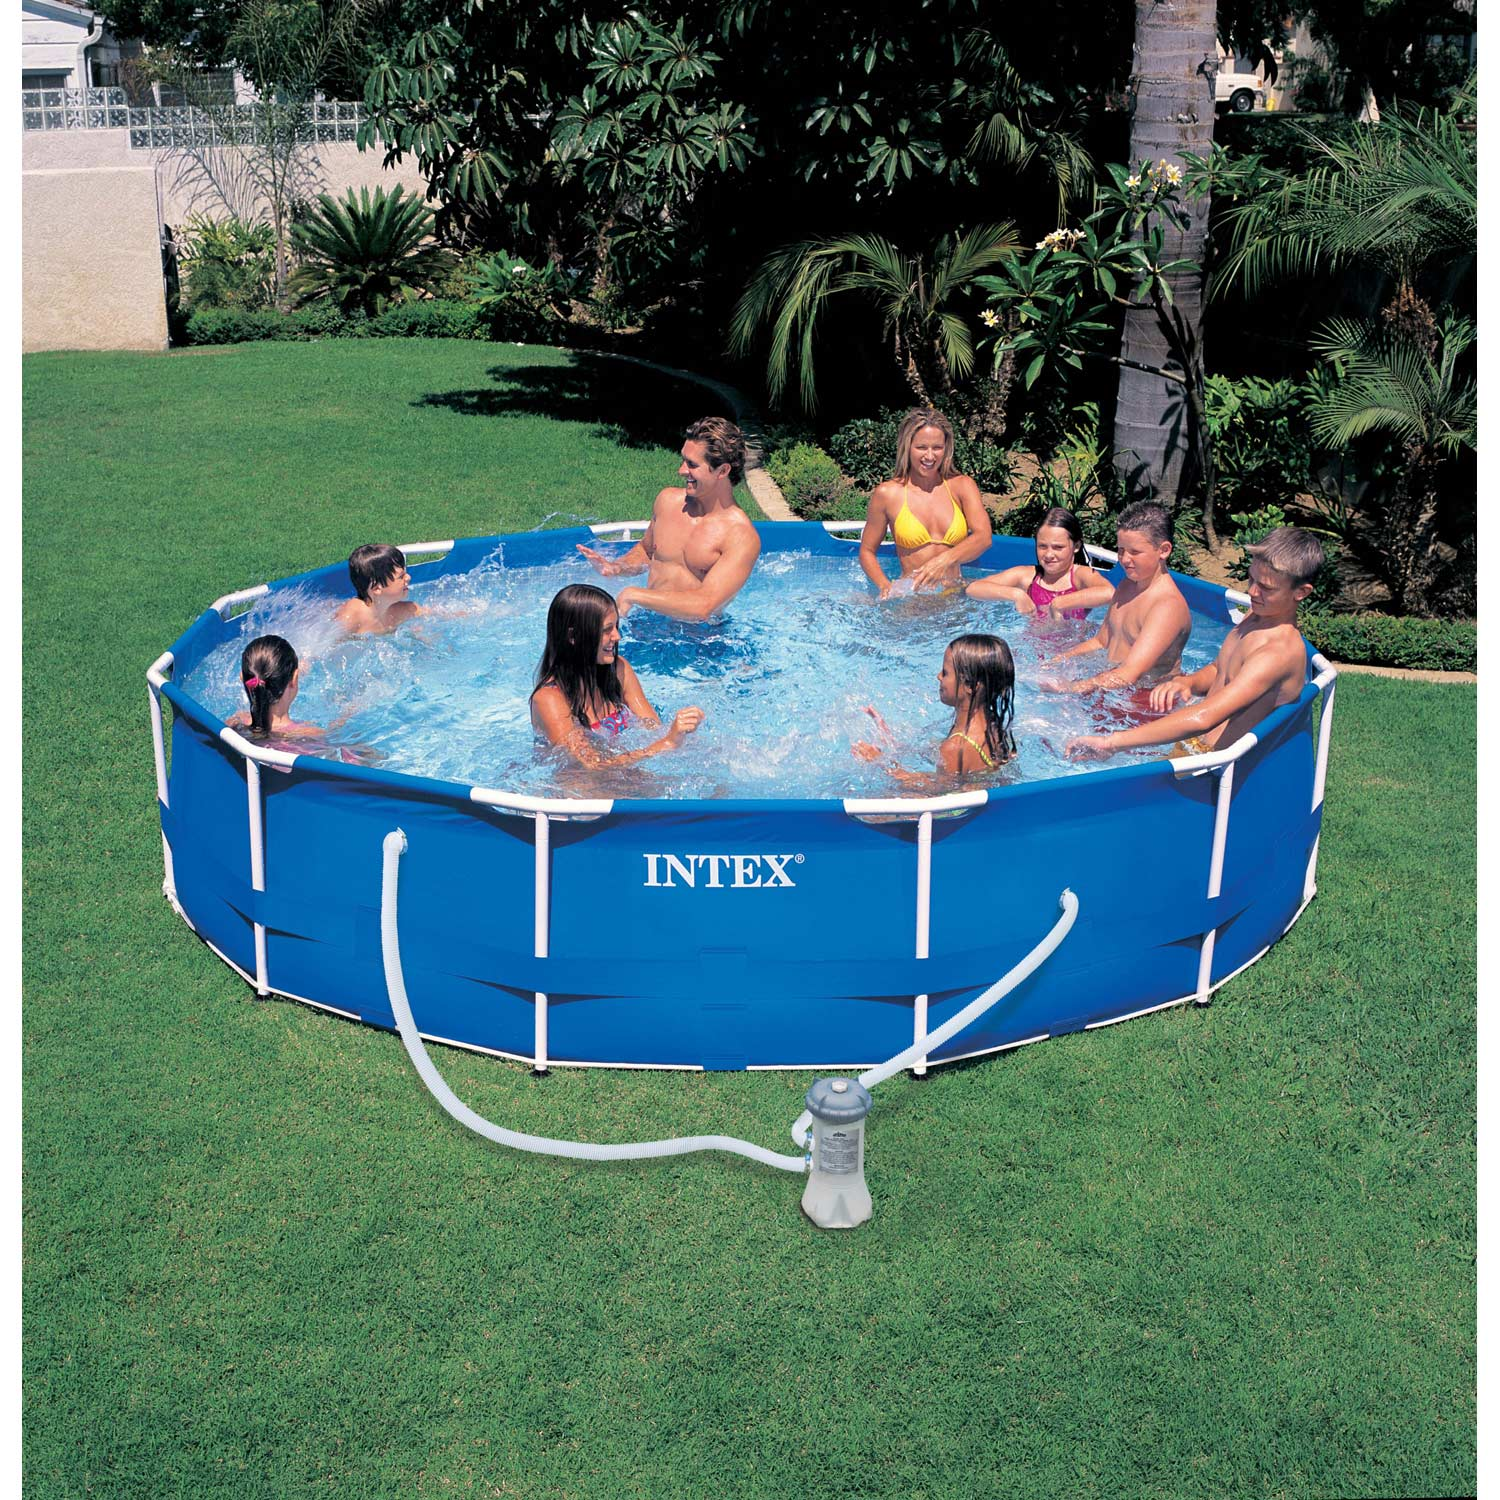 Piscine hors sol autoportante tubulaire metal frame intex diam x h m leroy merlin for Piscines hors sol leroy merlin